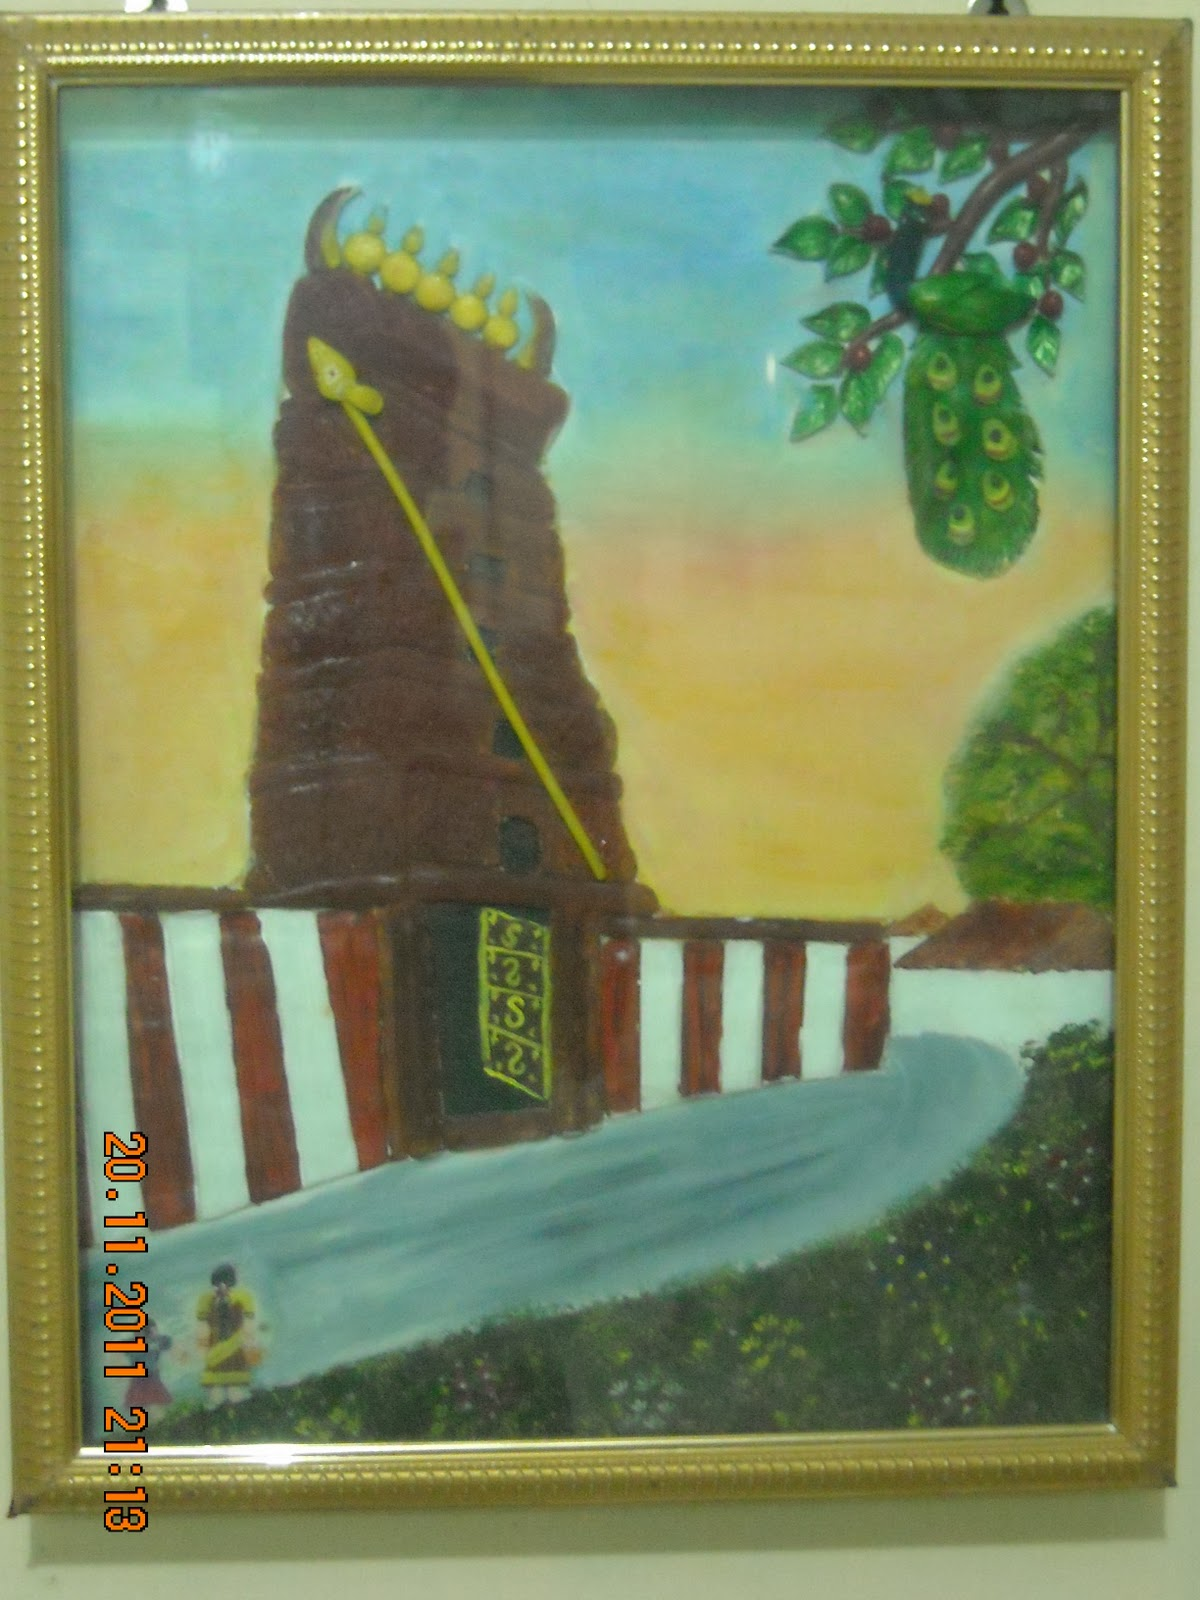 Orchids arts and craft gallery in palakkad temple mural for Arts and crafts mural